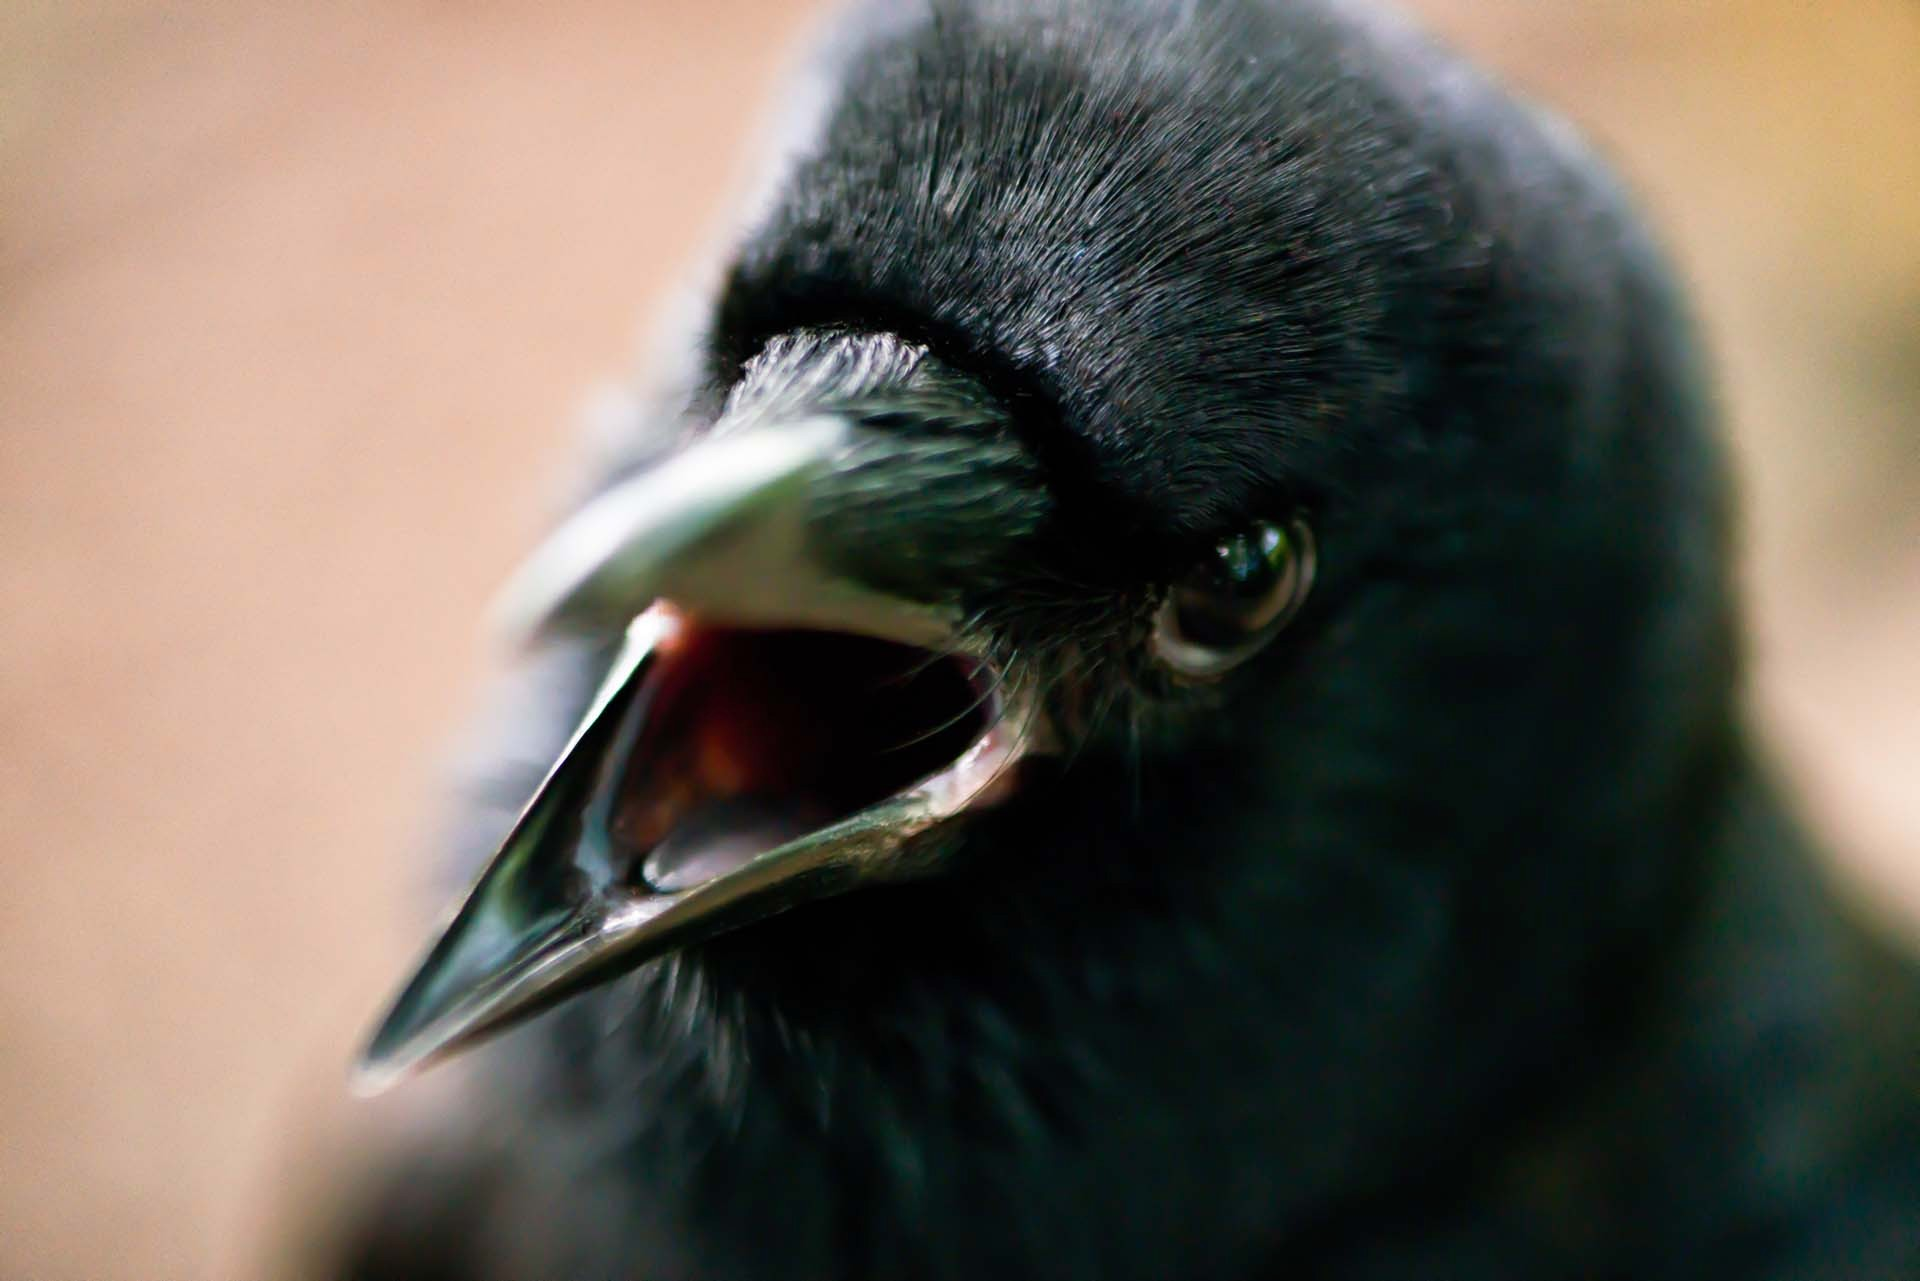 Birds: Real or Imagined